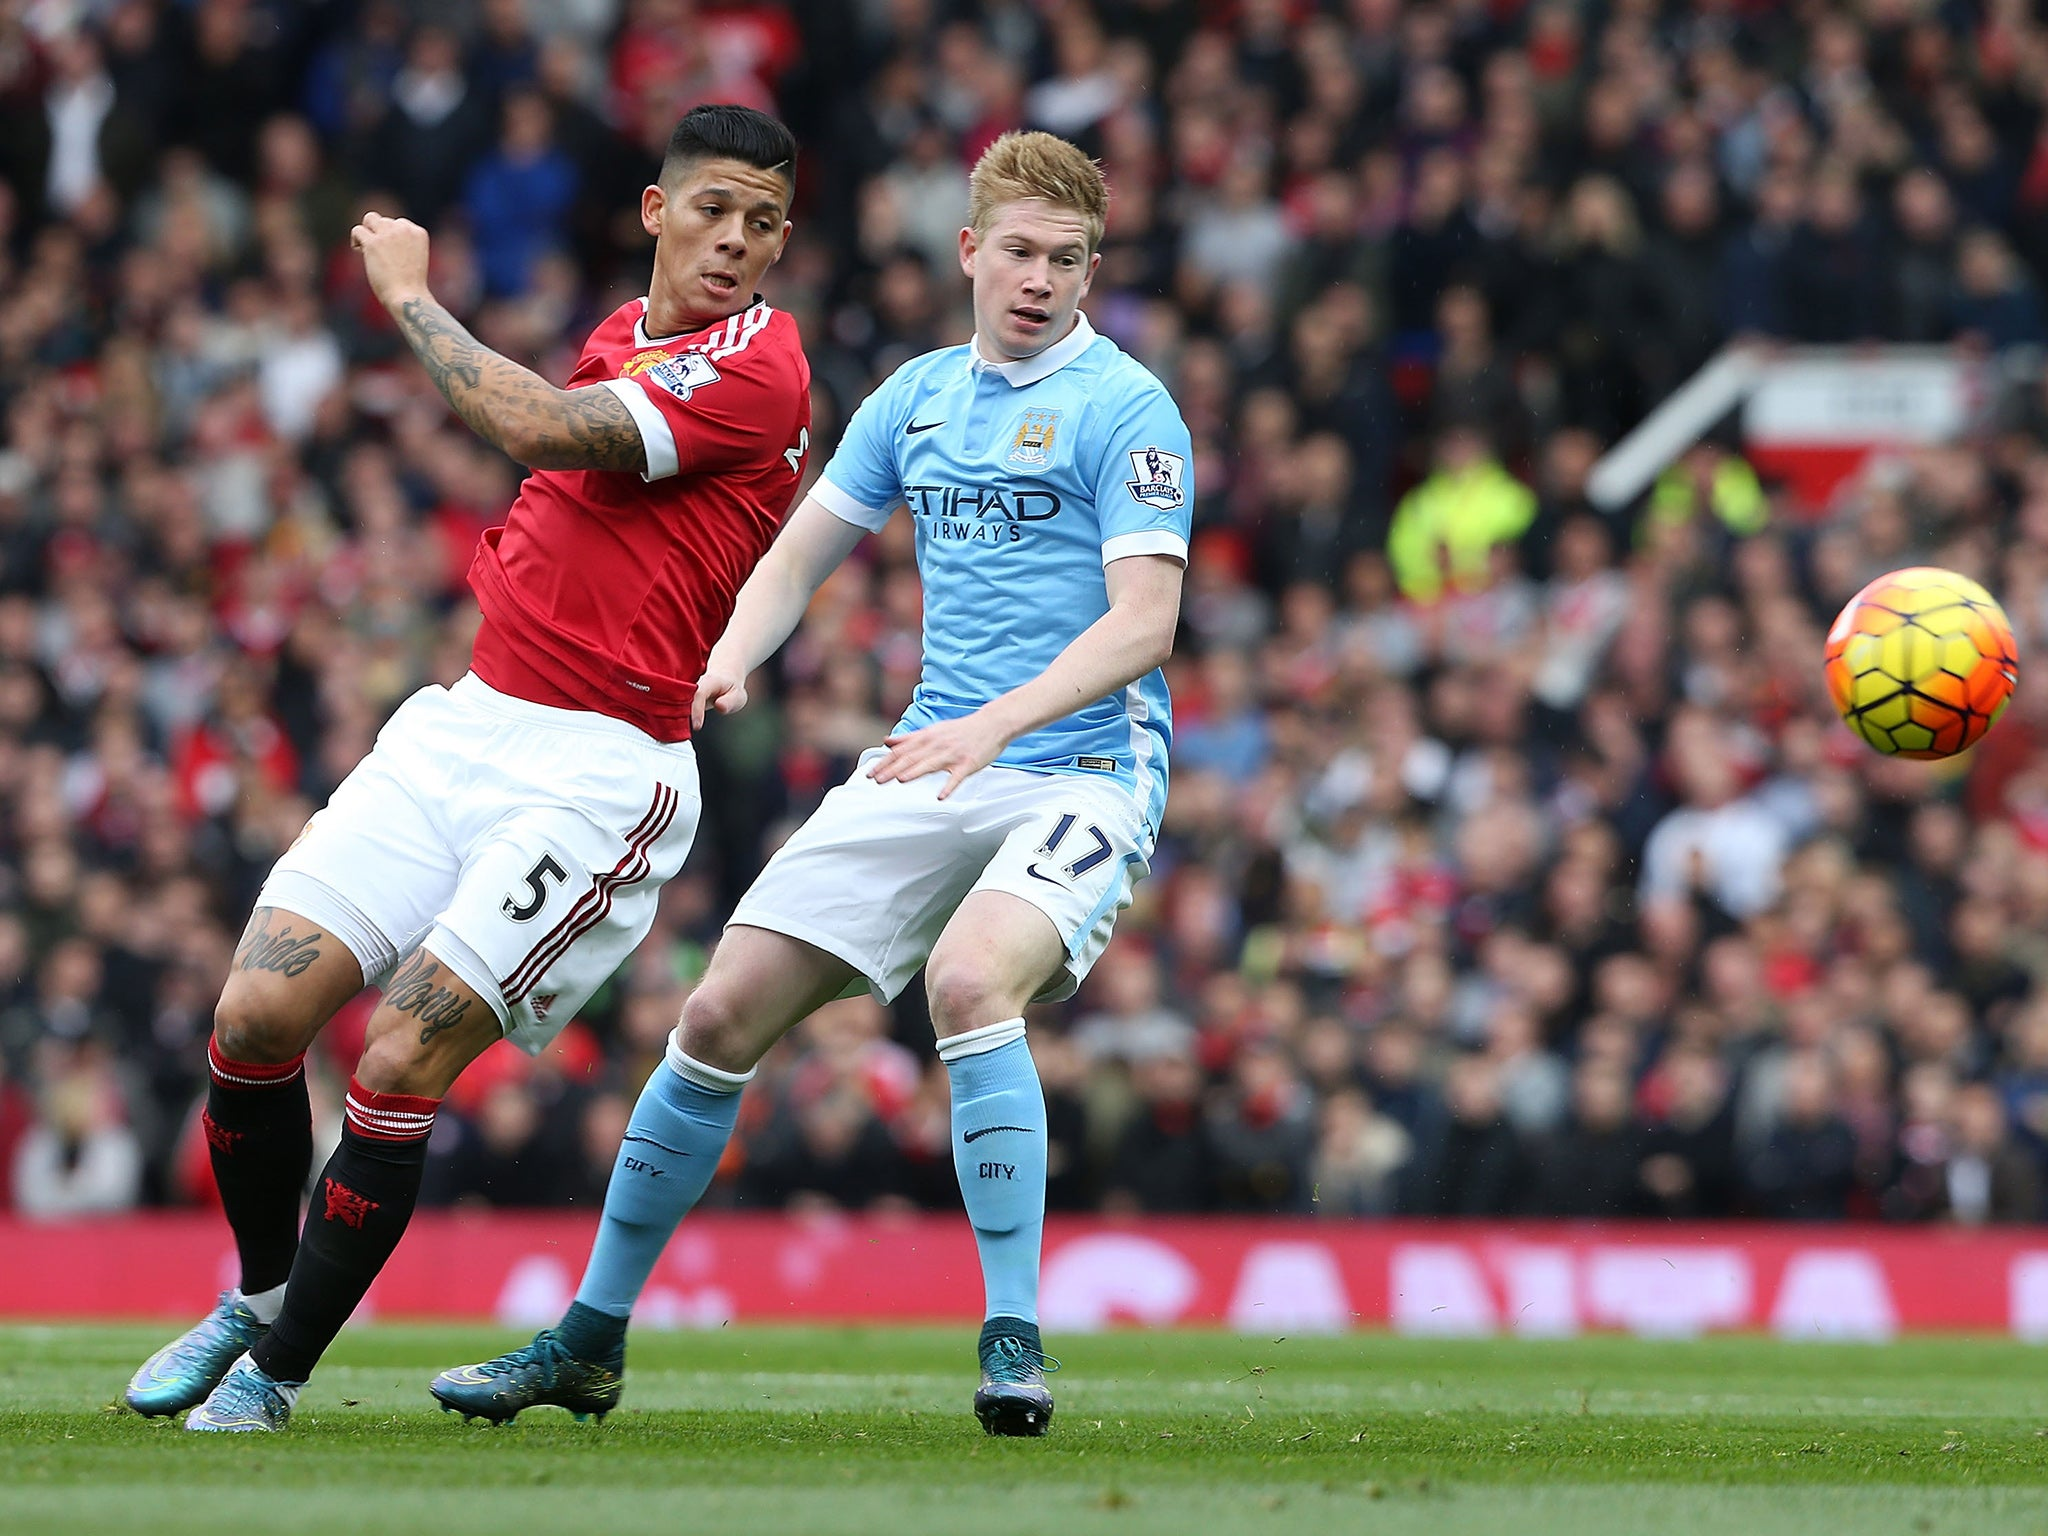 Marcos Rojo: 'phenomenal' Manchester United full-back lauded on social media for display in Manchester derby